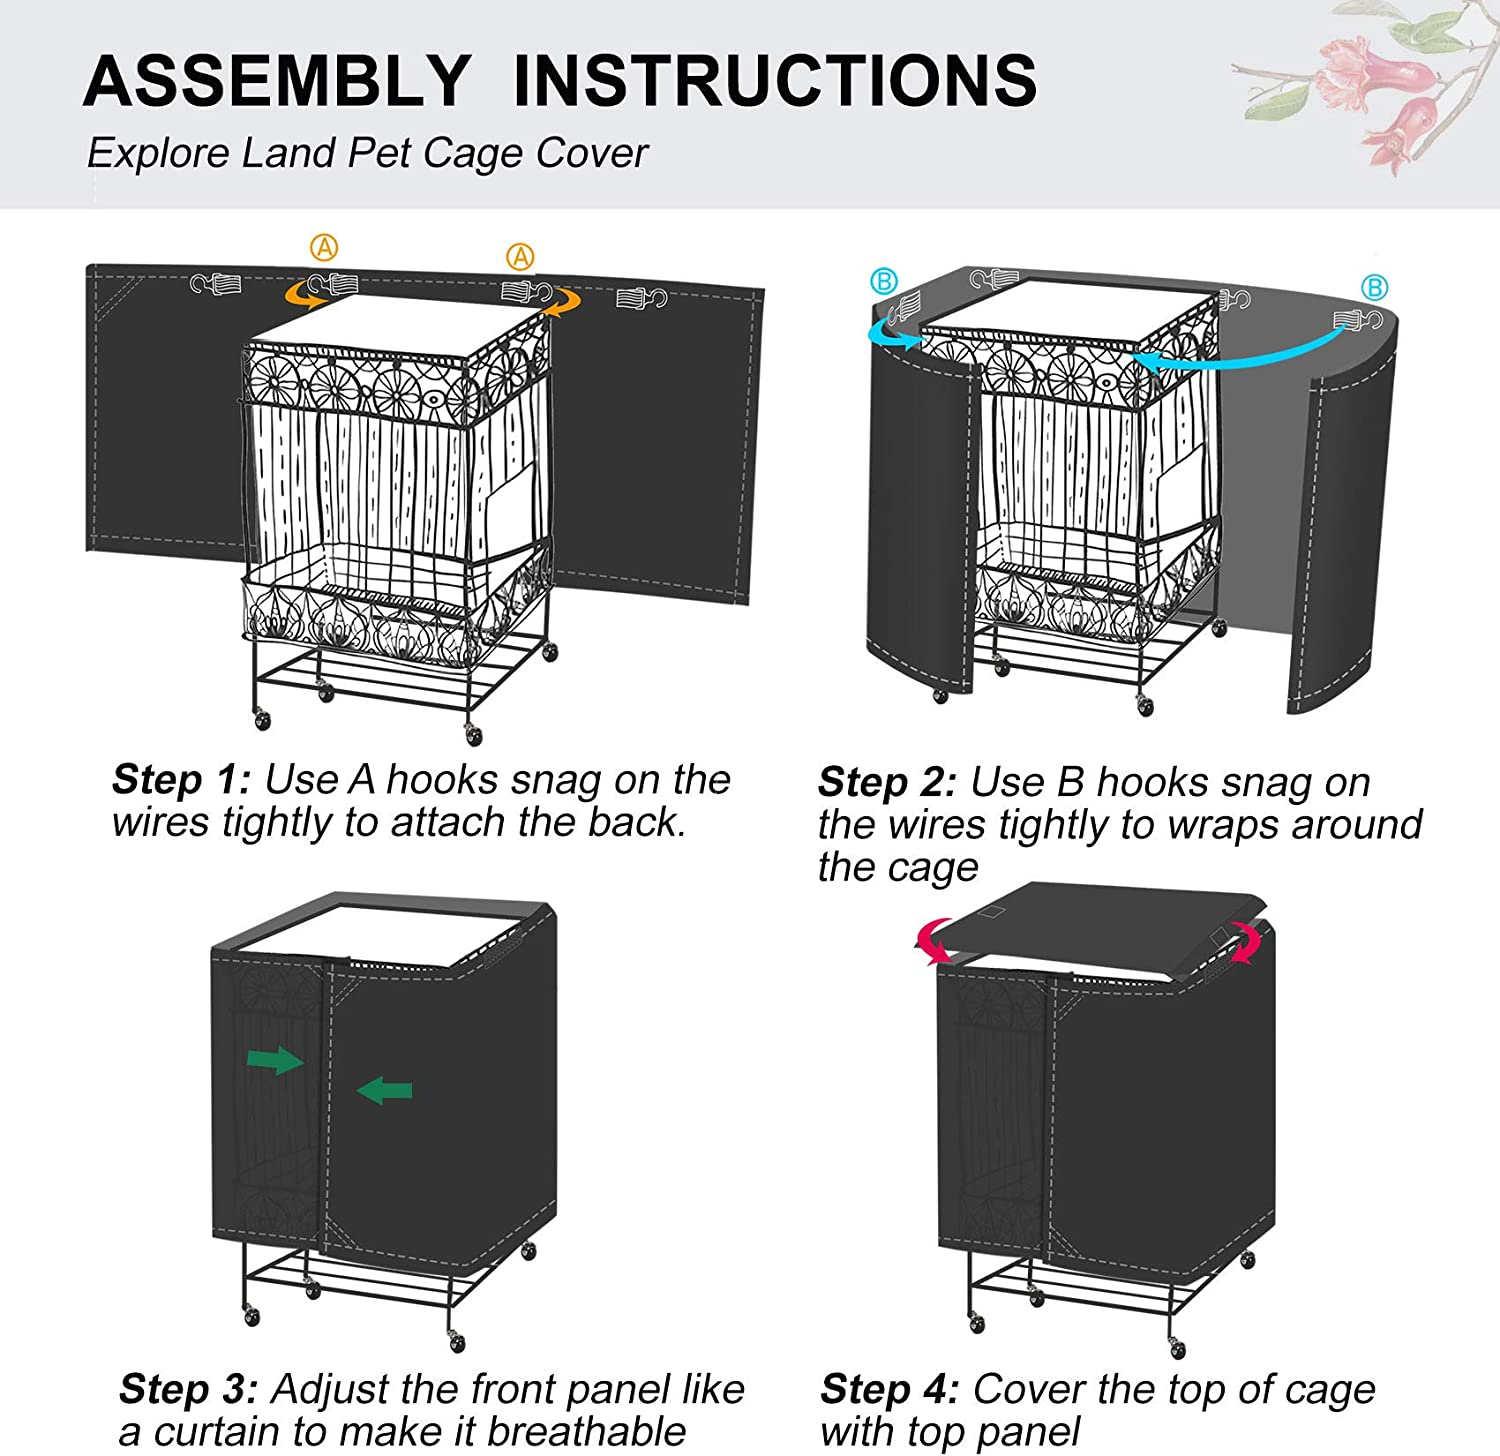 Explore Land Pet Cage Cover with Removable Top Panel Good Night Cover for Bird Critter Cat Cage to Small Animal Privacy /& Comfort